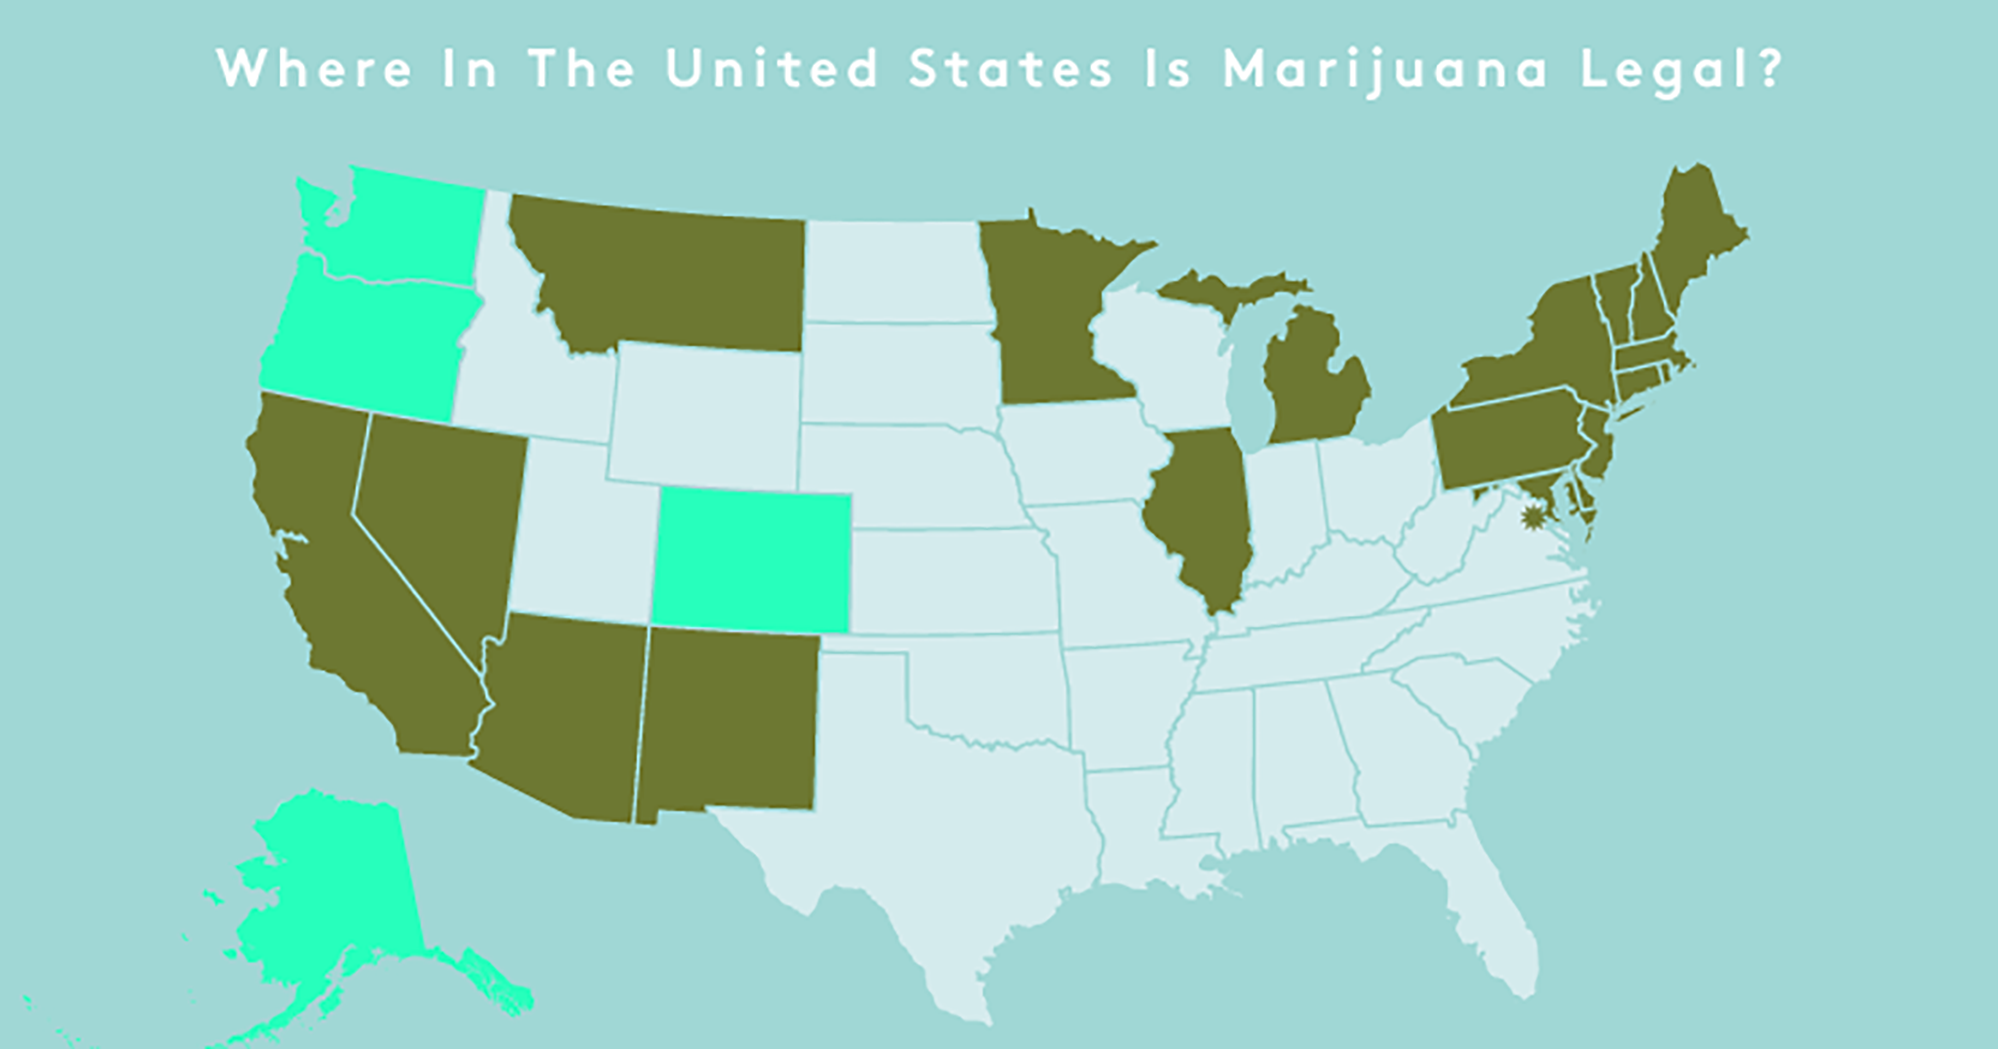 legalizing marijuana in the united states Norml's mission is to move public opinion sufficiently to legalize the responsible use of marijuana by adults united states.